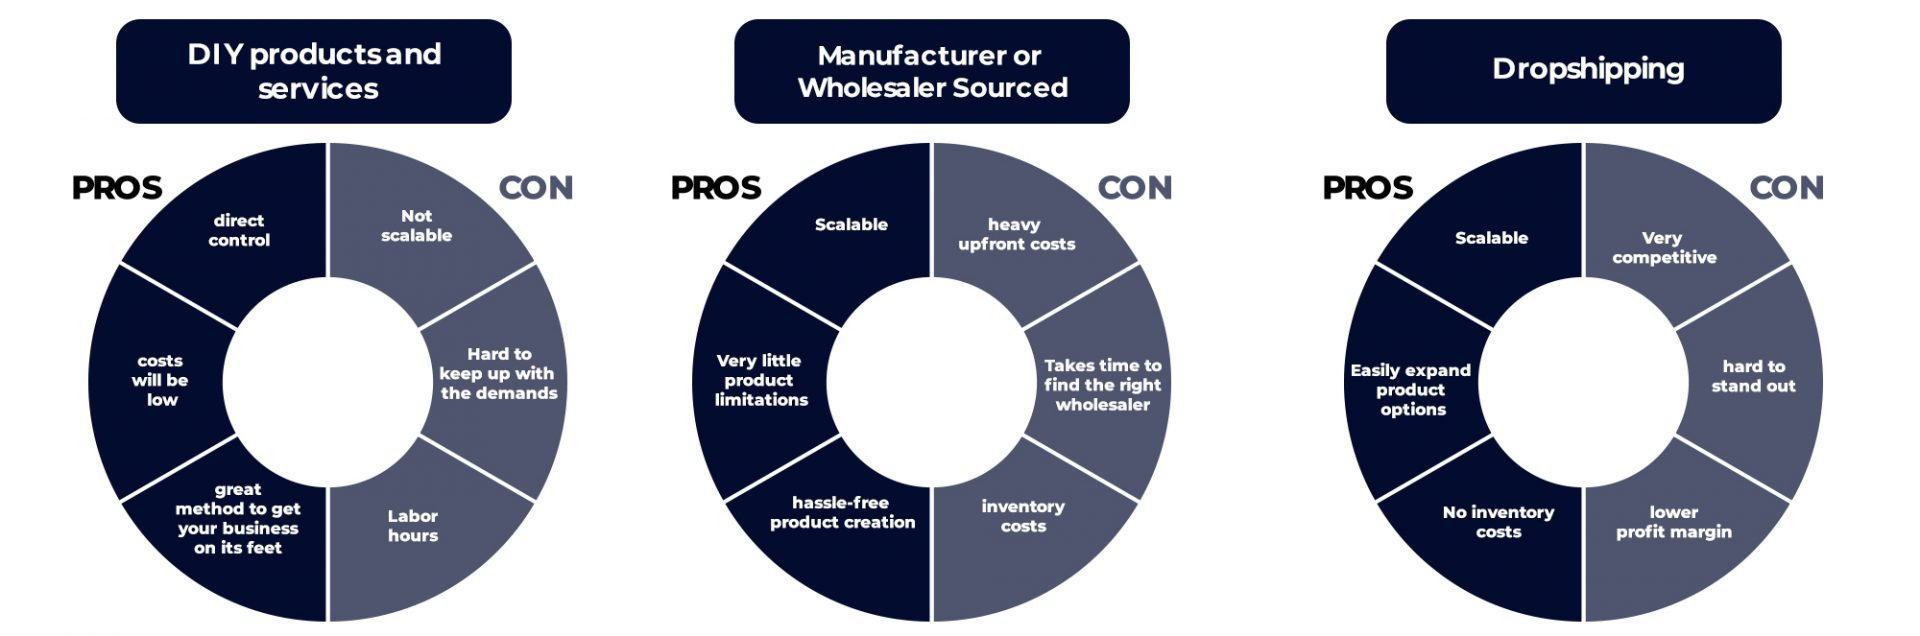 Pros and Cons of product sourcing methods